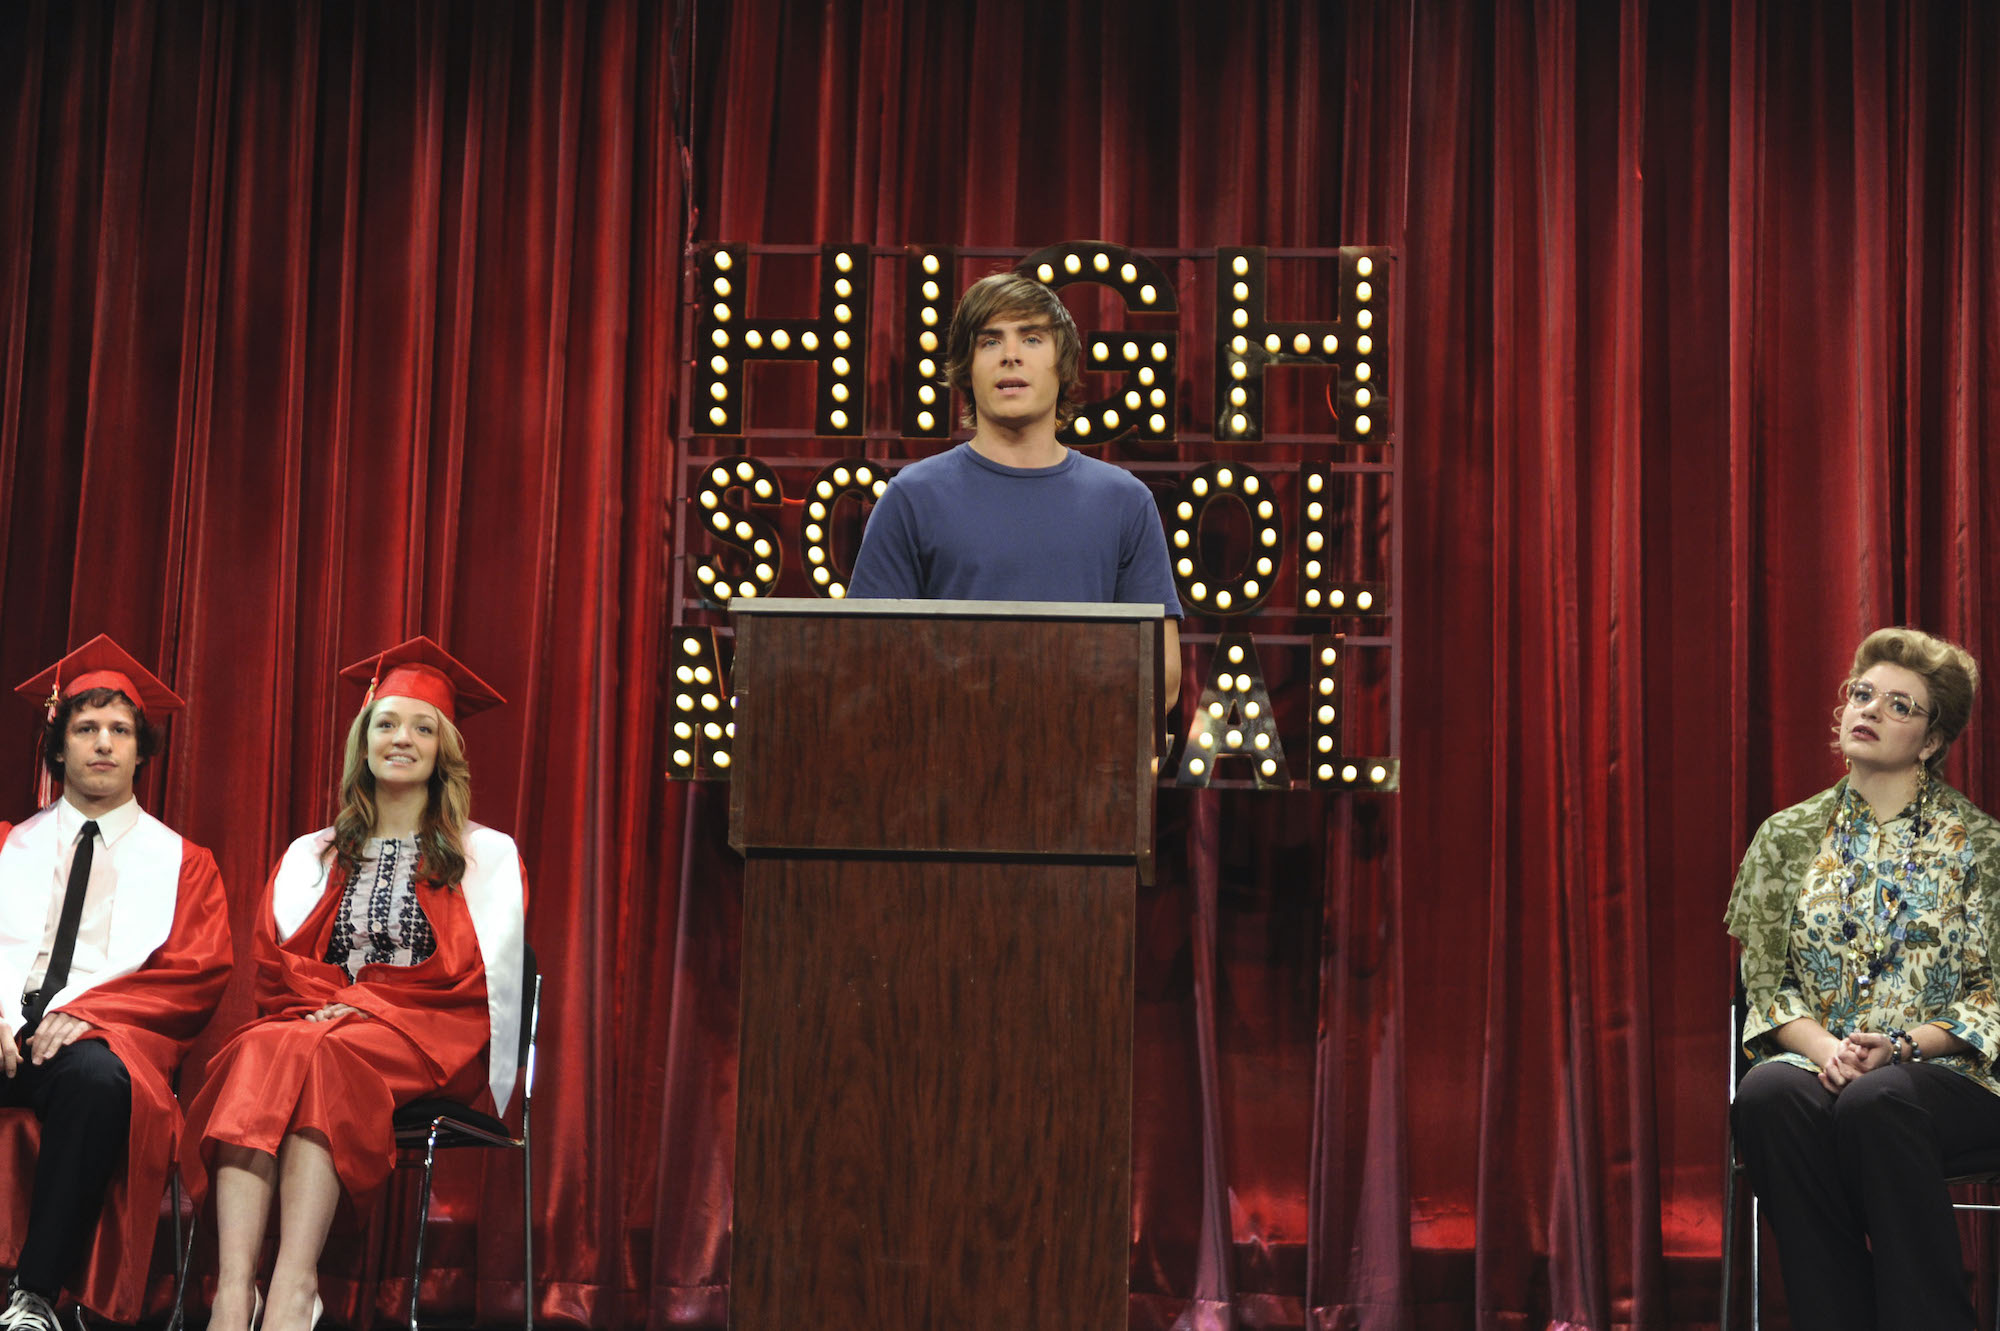 Zac Efron as Troy Bolton on an episode of 'Saturday Night Live,' which he hosted on April 11, 2009.